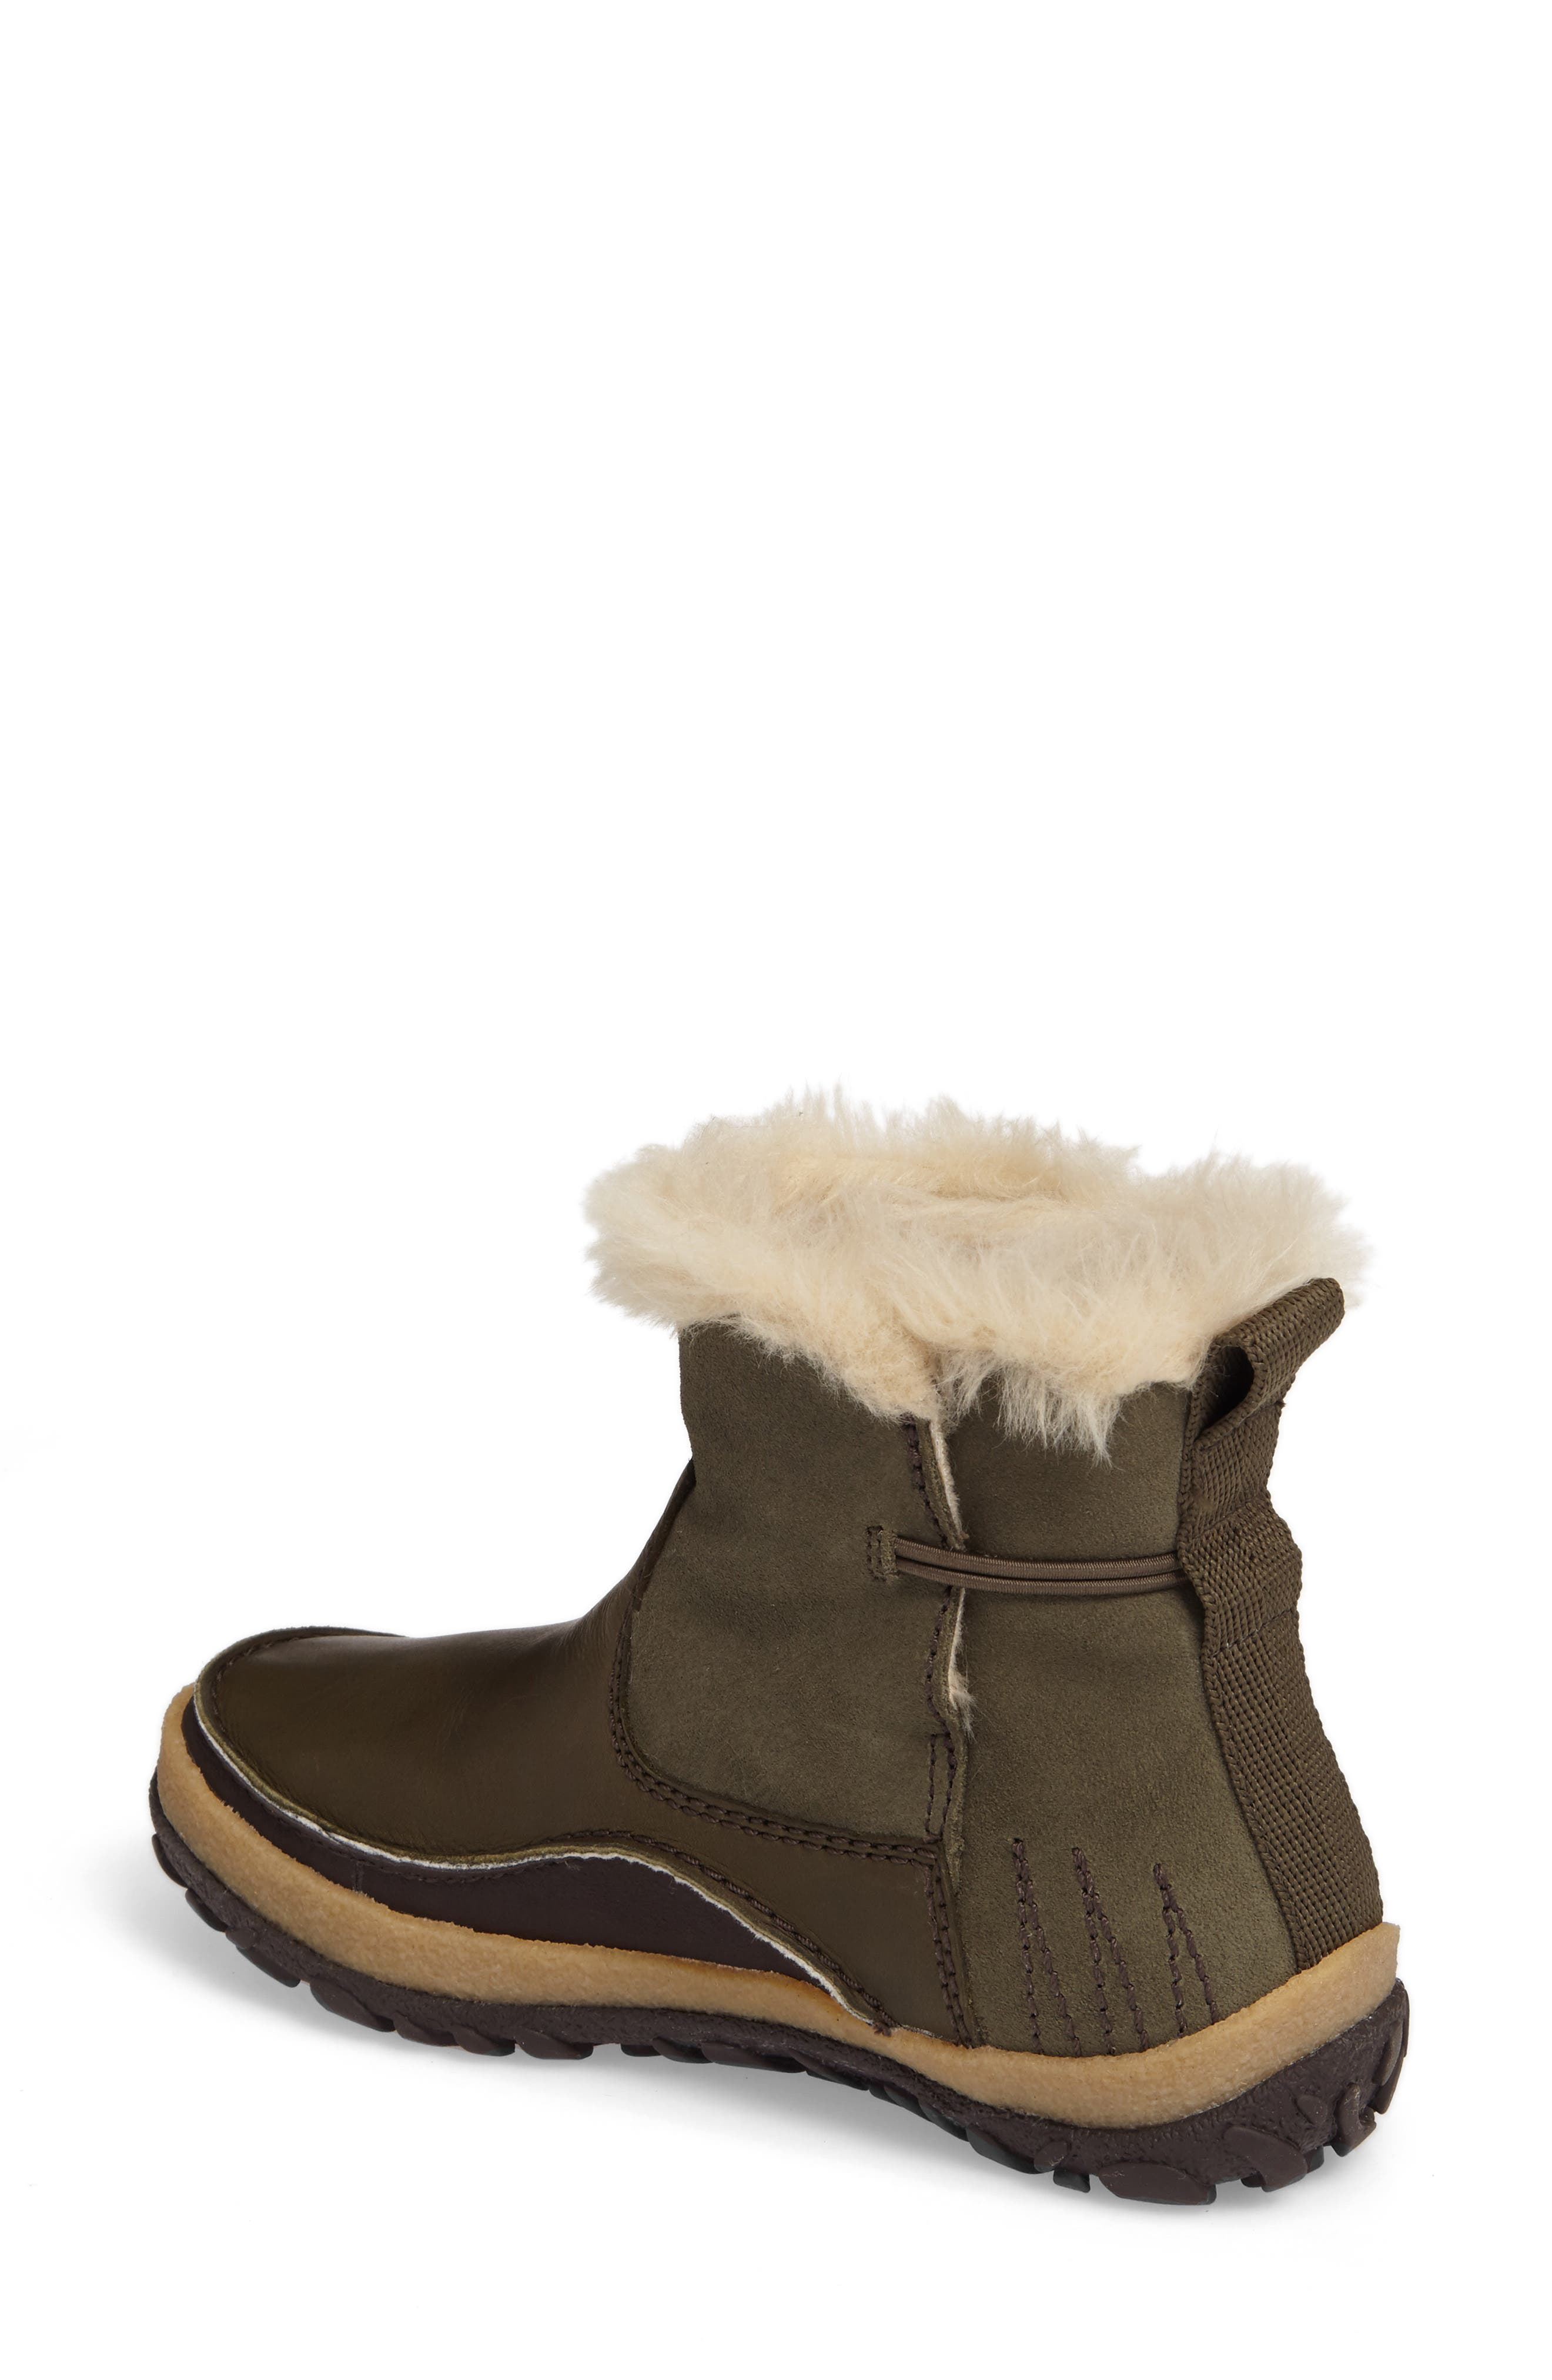 Tremblant Pull-On Polar Waterproof Bootie,                             Alternate thumbnail 8, color,